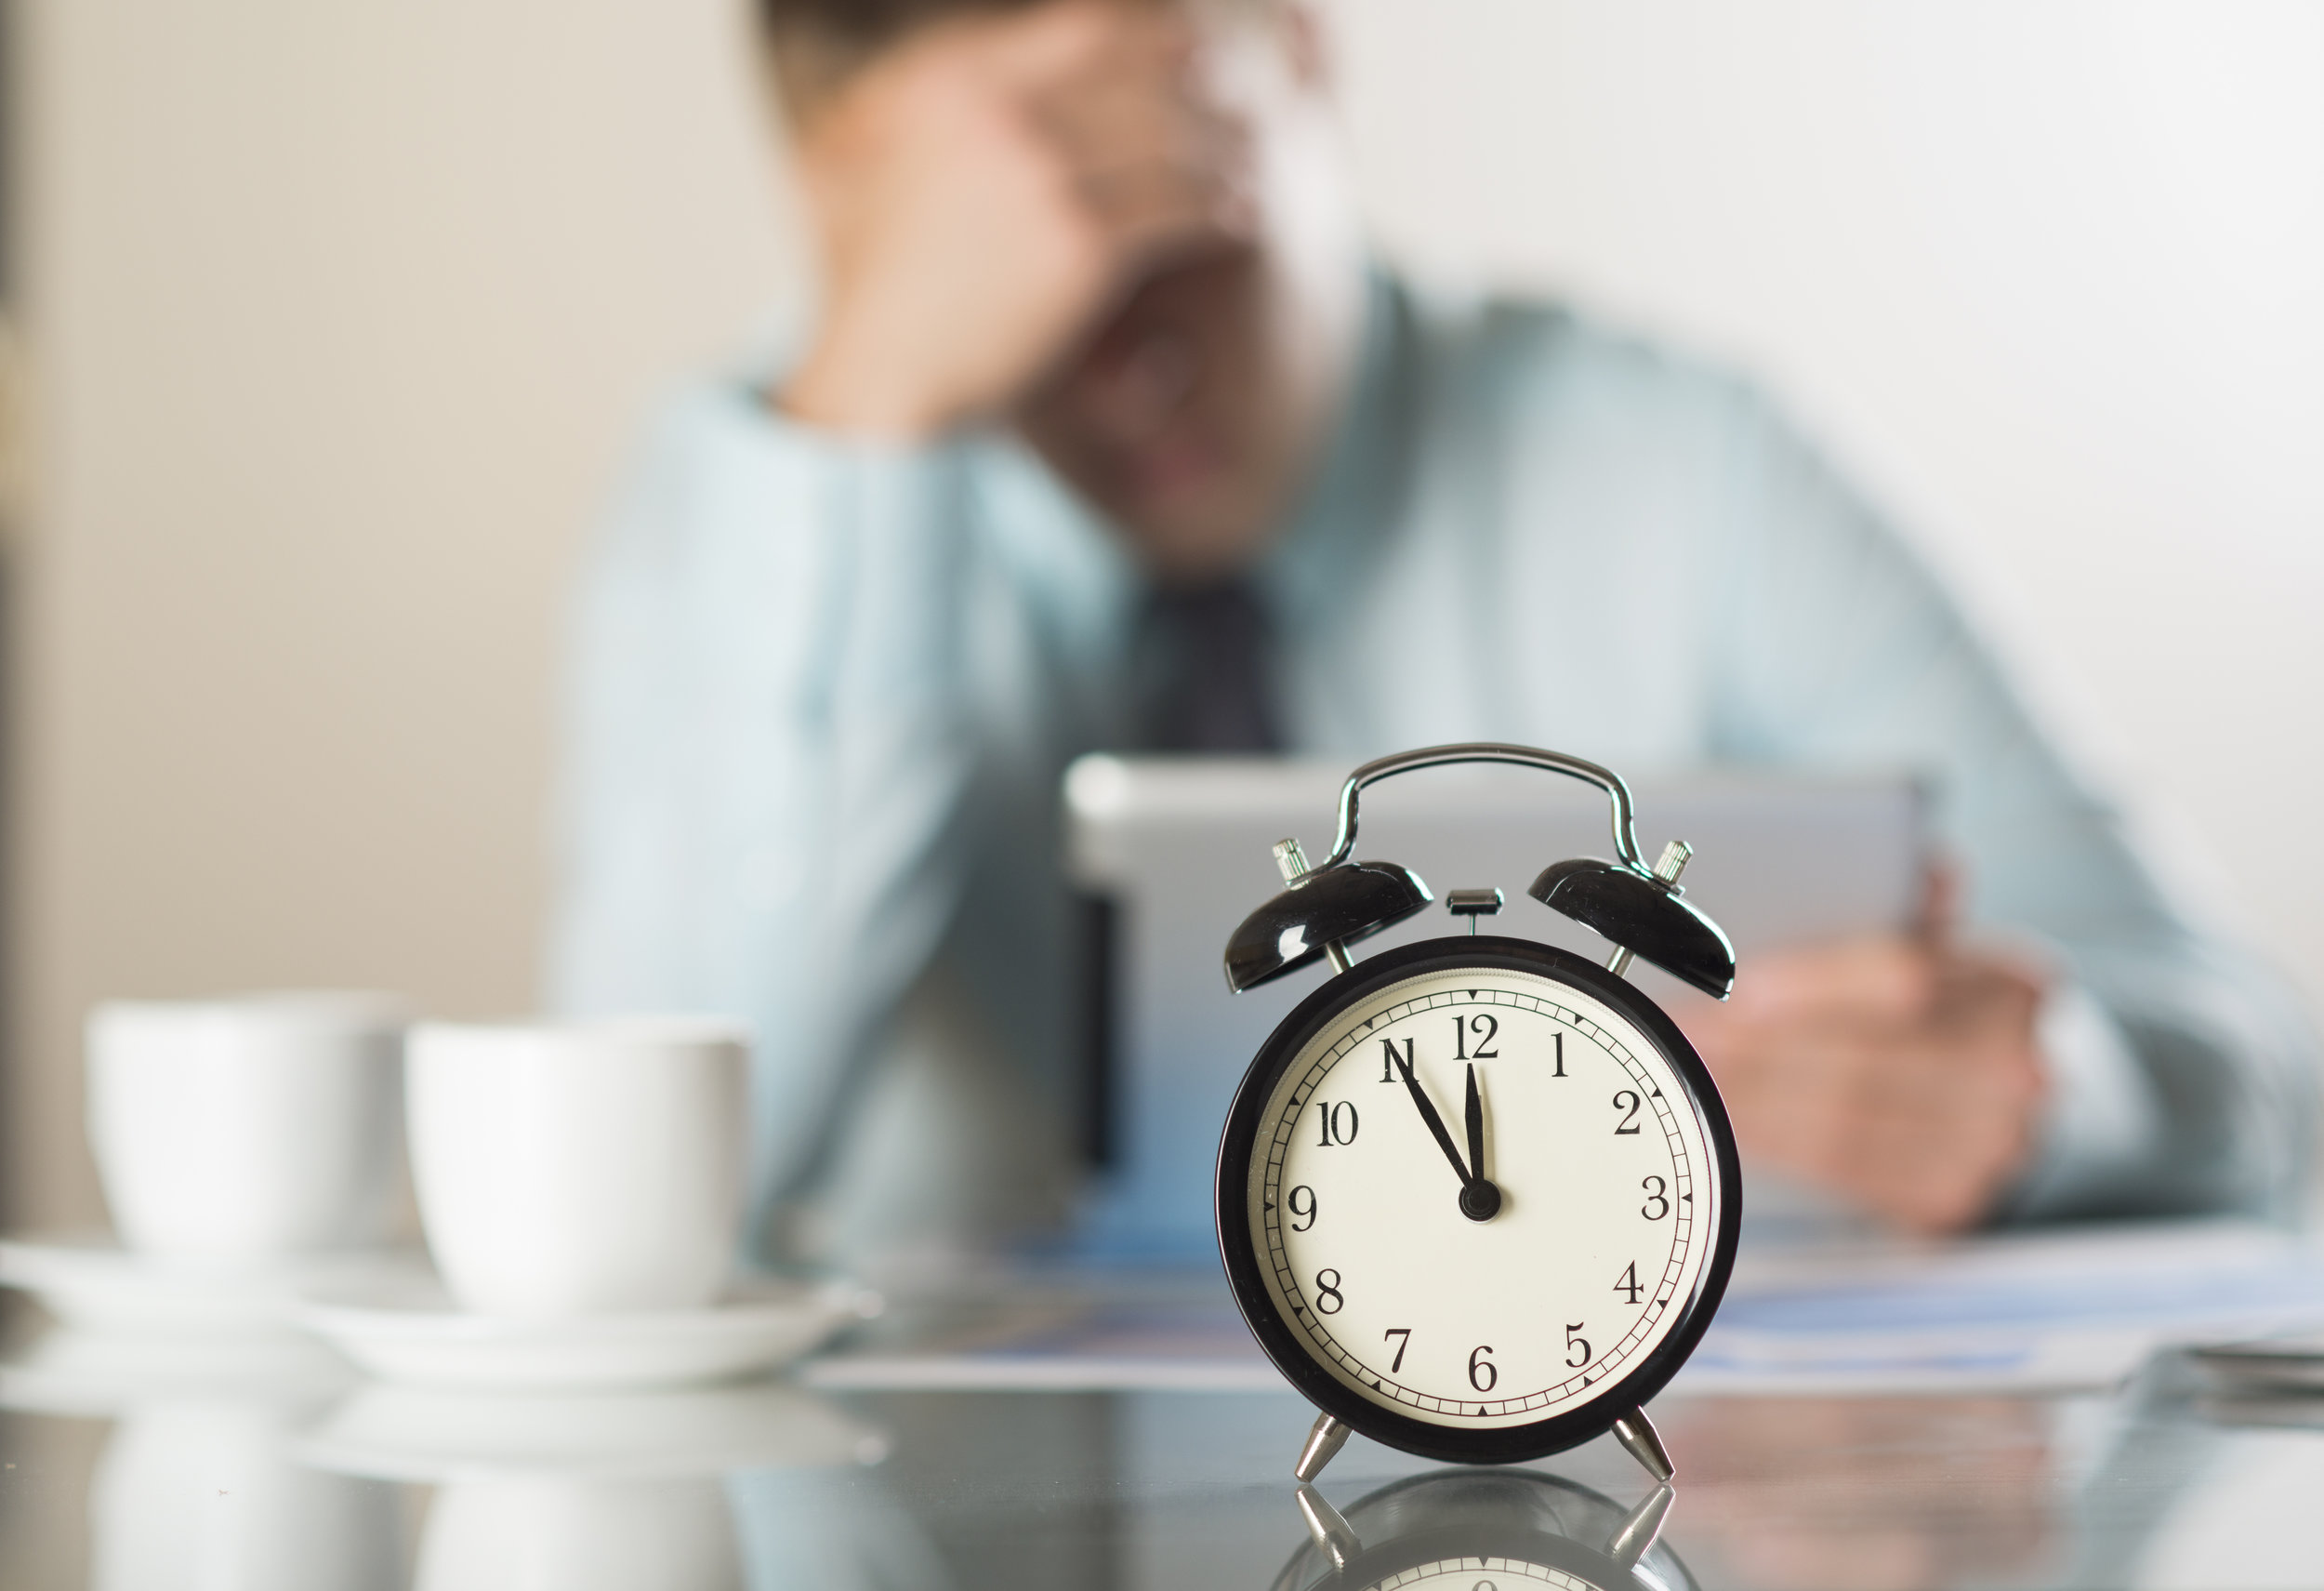 time management can be stressful planning ahead using a calendar and tasks list and other tips .jpg